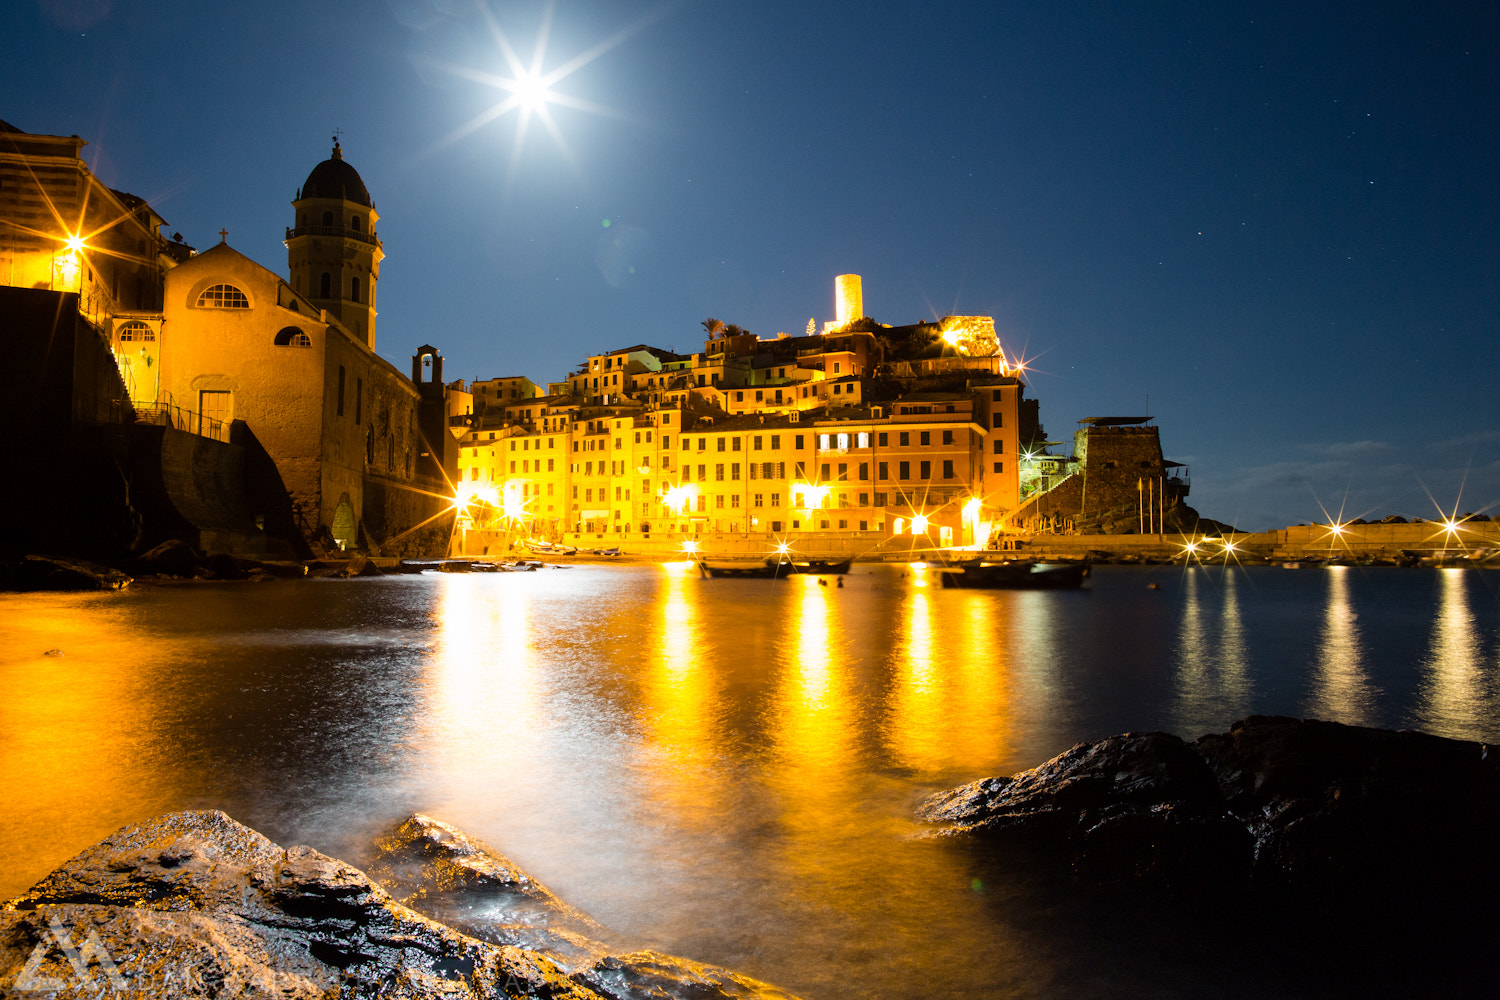 Photograph Moonrise Over Vernazza by Dan Carr on 500px